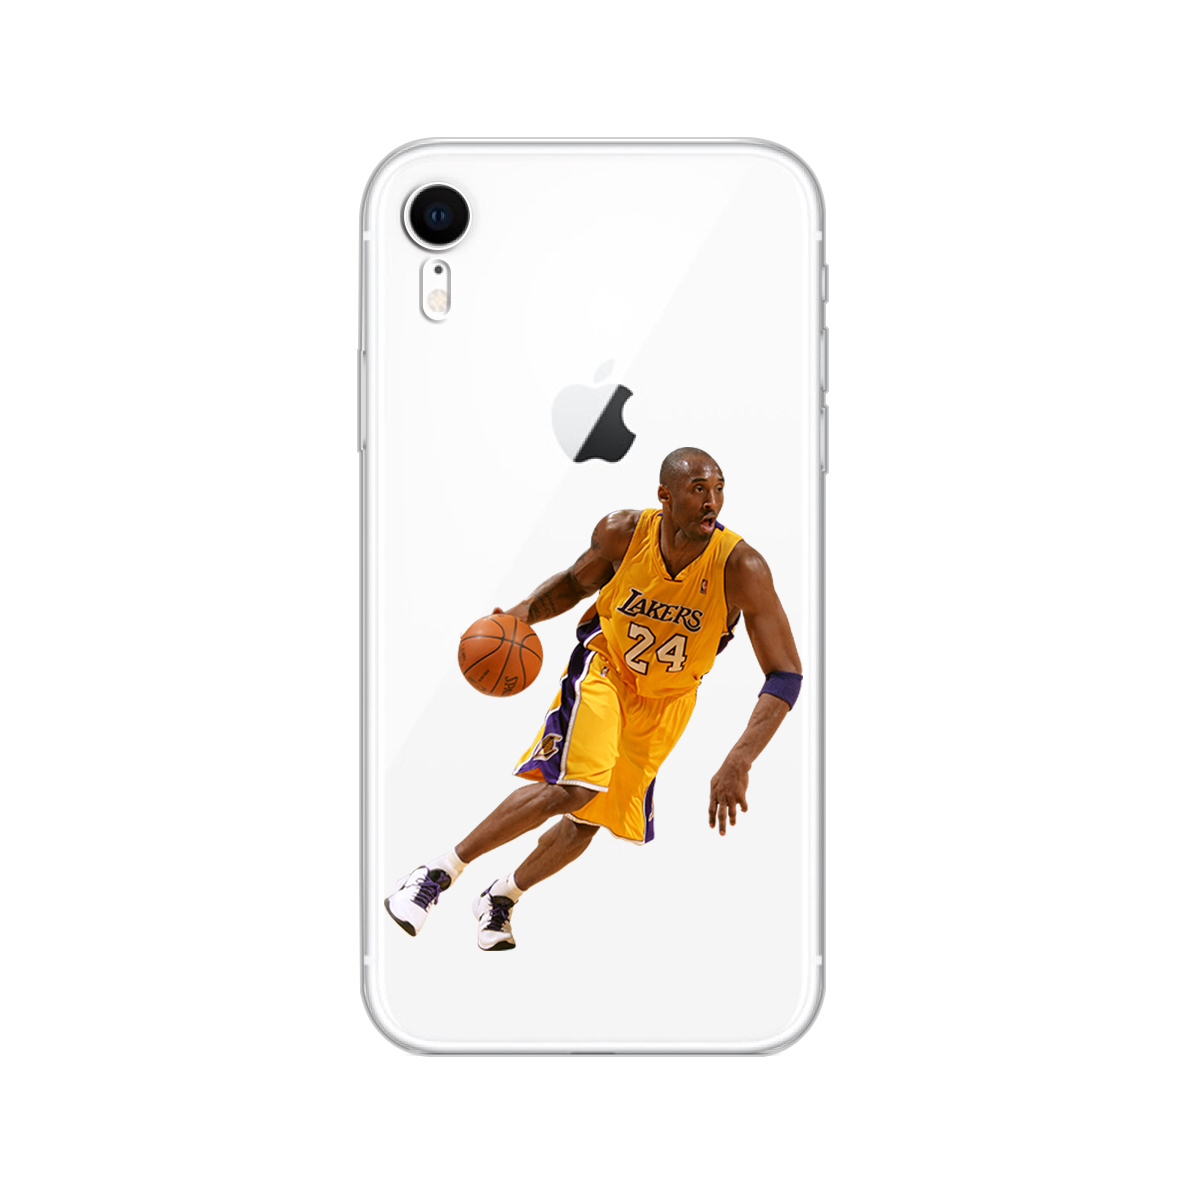 Sports Basketball Pattern Design Soft Silicone Phone Cases Cover for Iphone 8 7 6 6S Plus 5S SE X XR XS MAX Capa Kobe